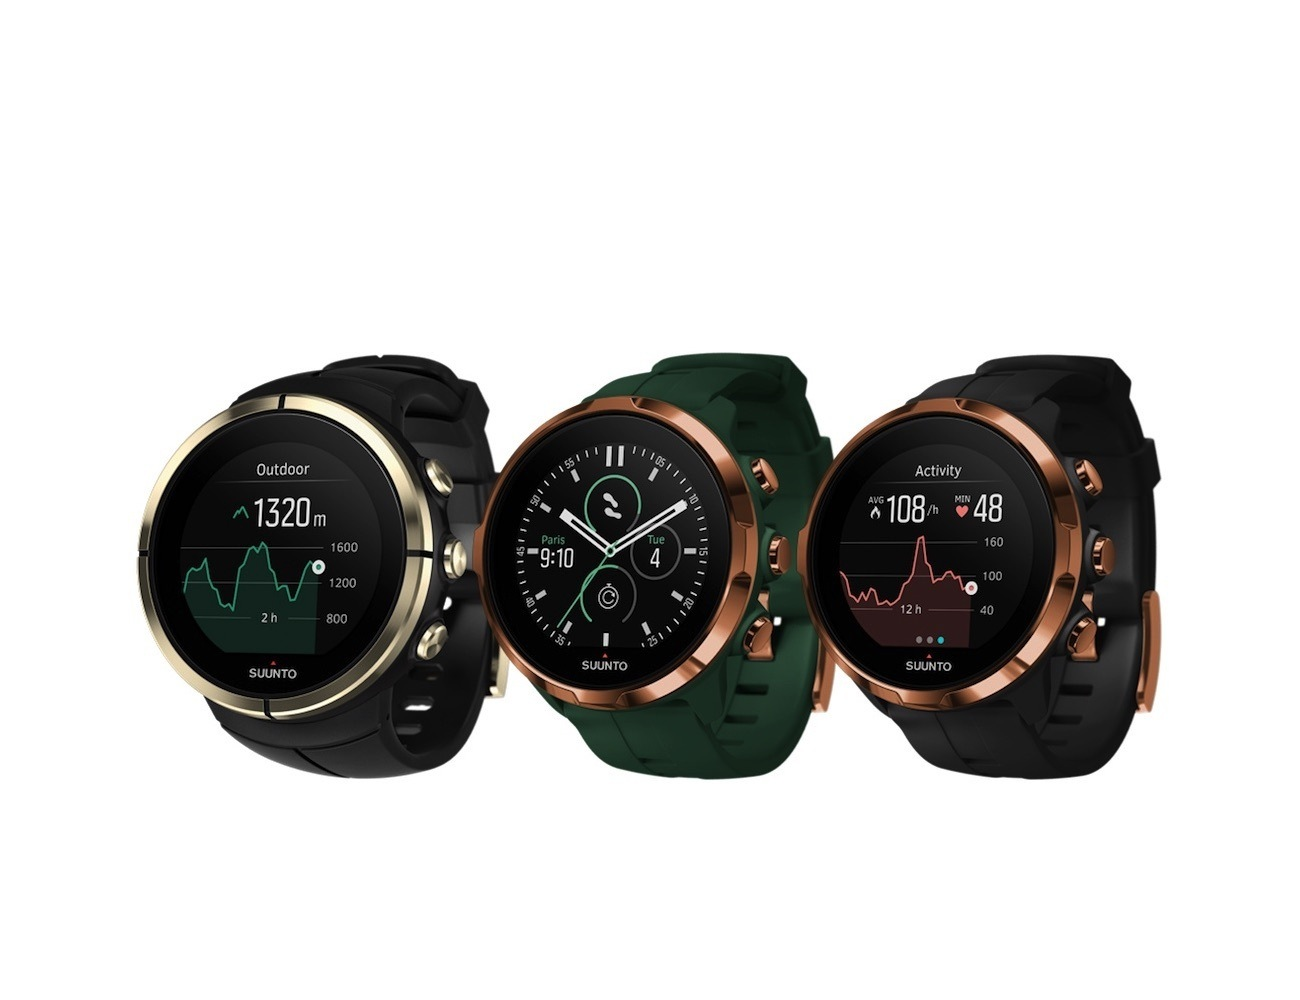 Suunto Spartan Athlete Smartwatches